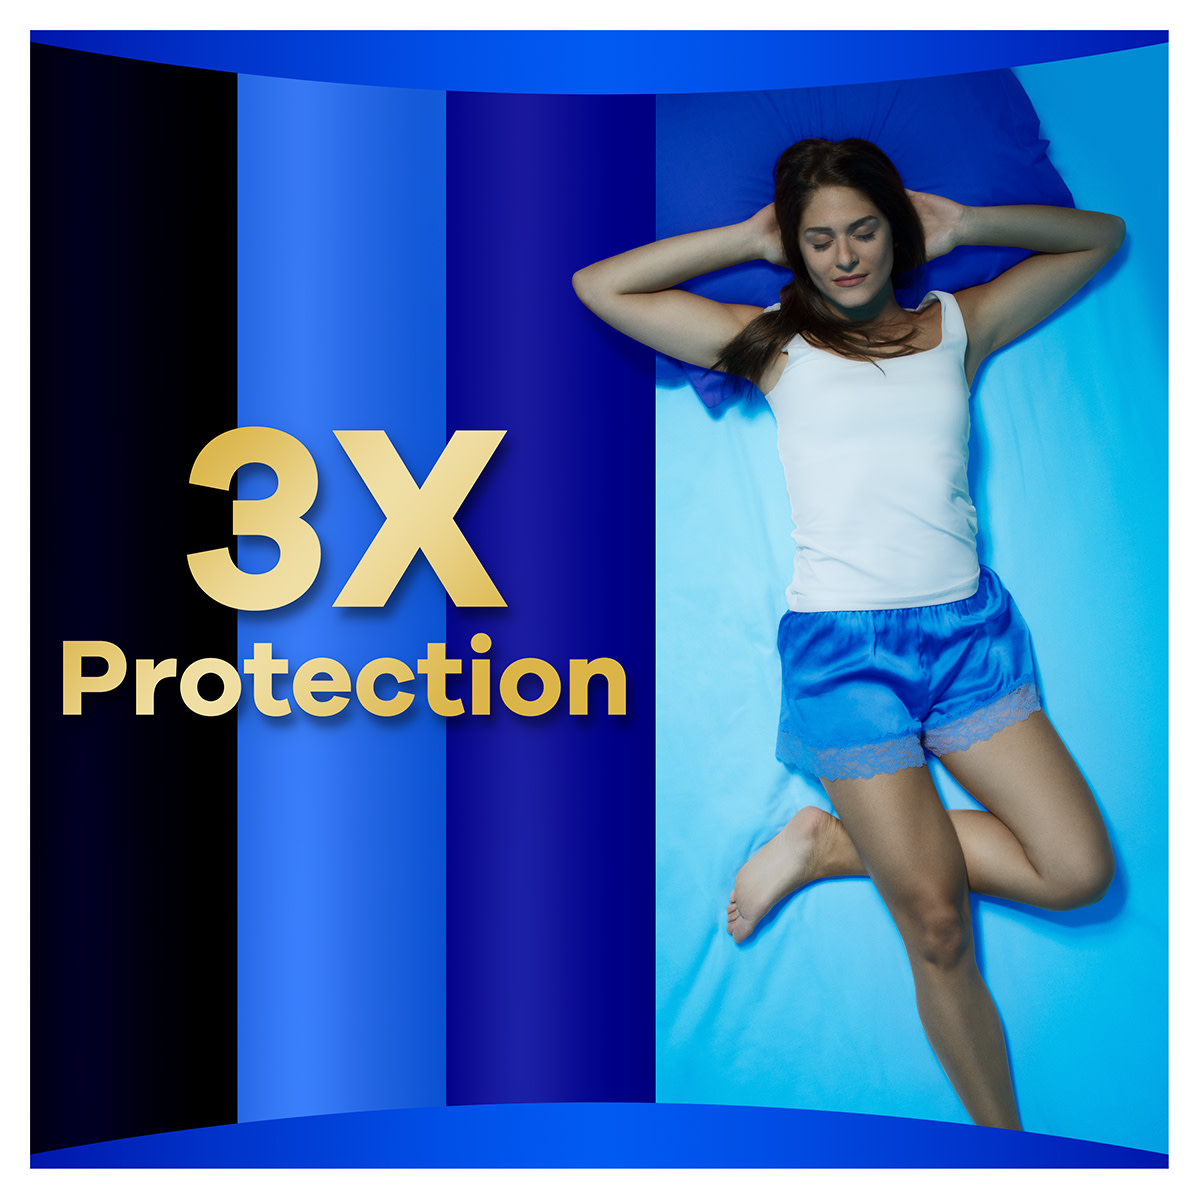 Always Ultra Night 3x Protection